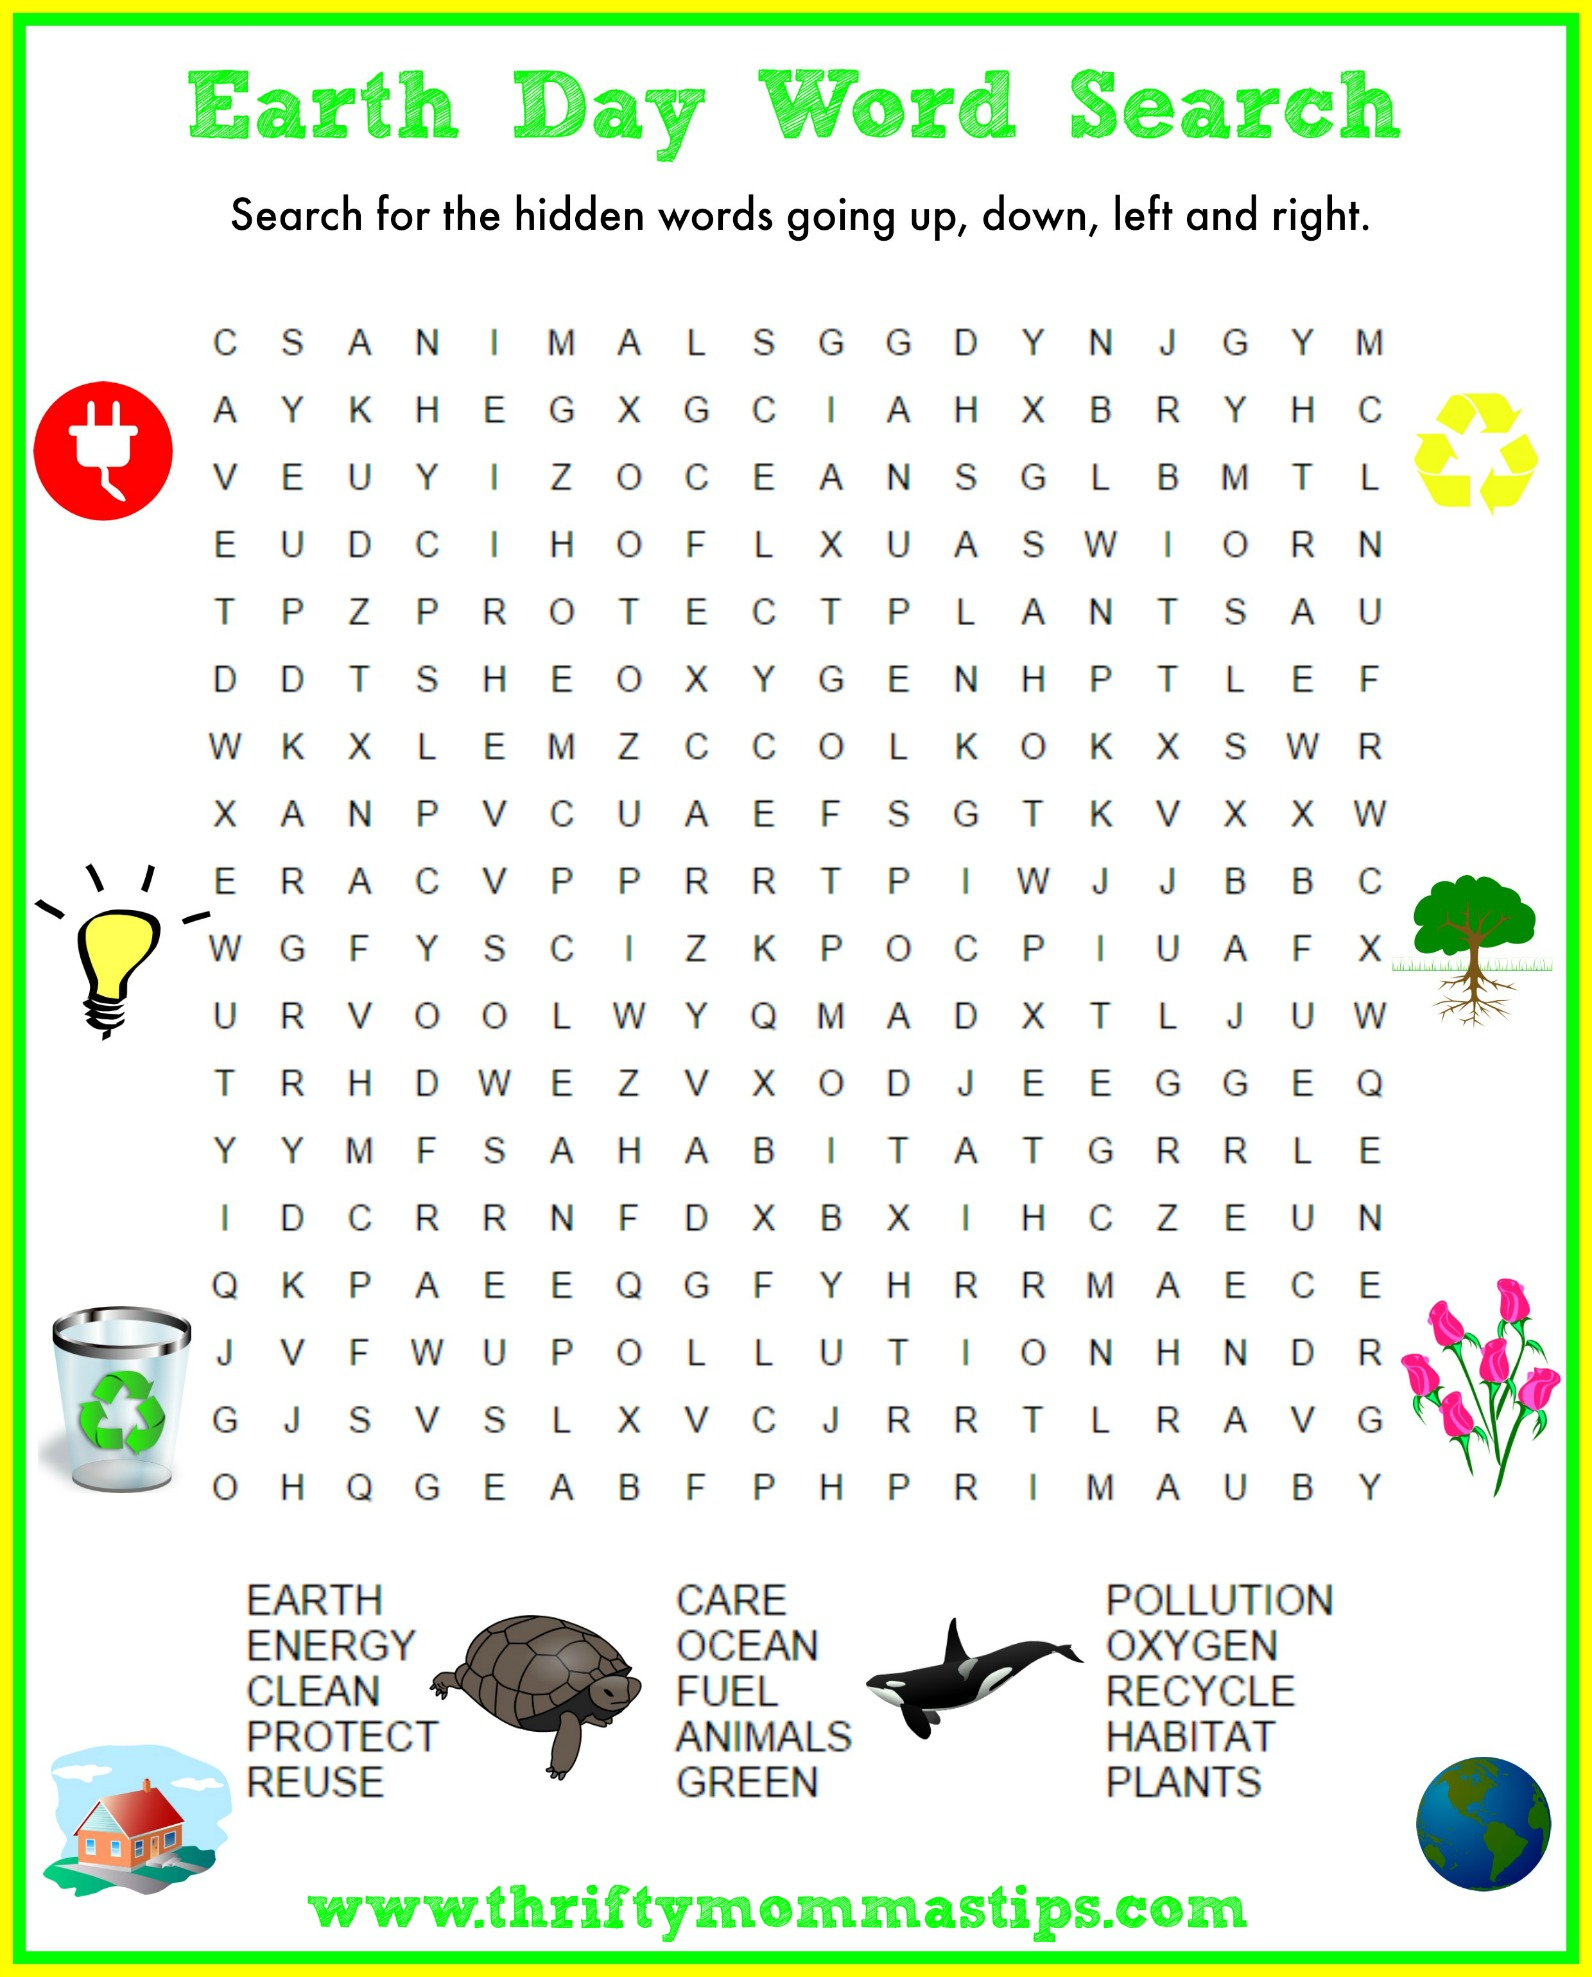 Support the Earth, Earth Day Word Search Puzzle Answers Free ...